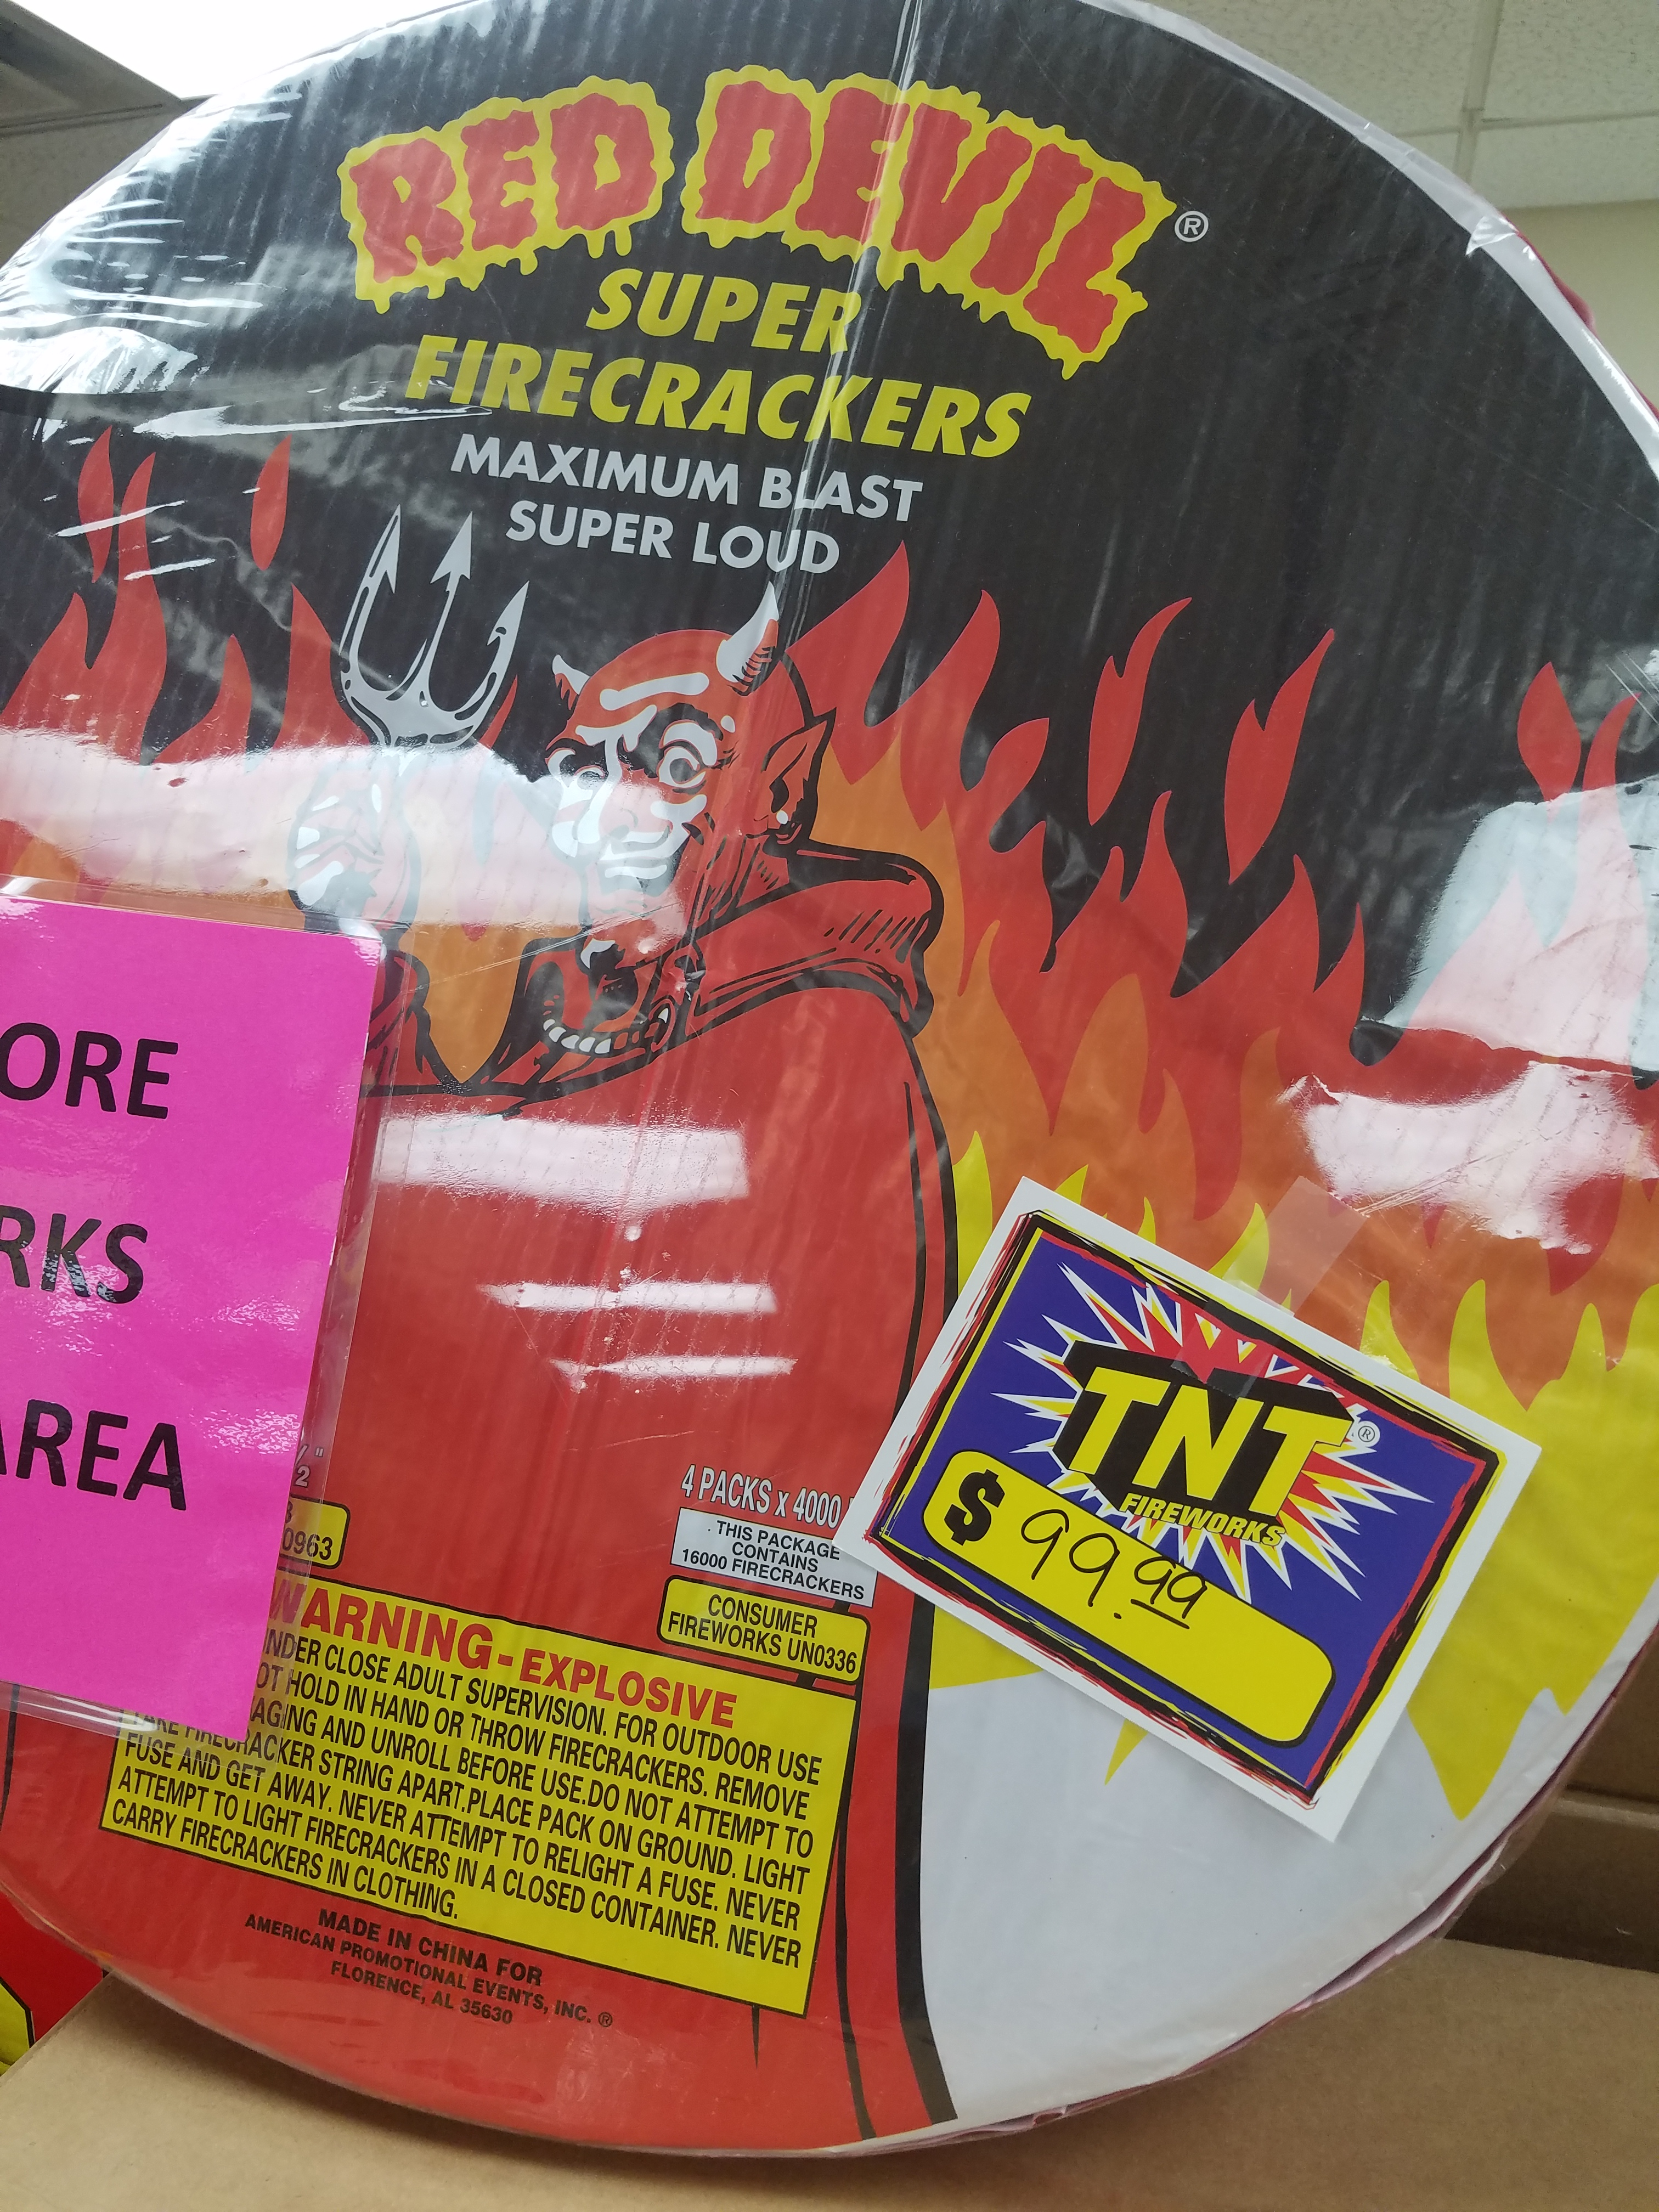 At the Tennessean truck stop near Lewisburg, TN. The fine print explains that $99.99 buys 16,000 firecrackers.